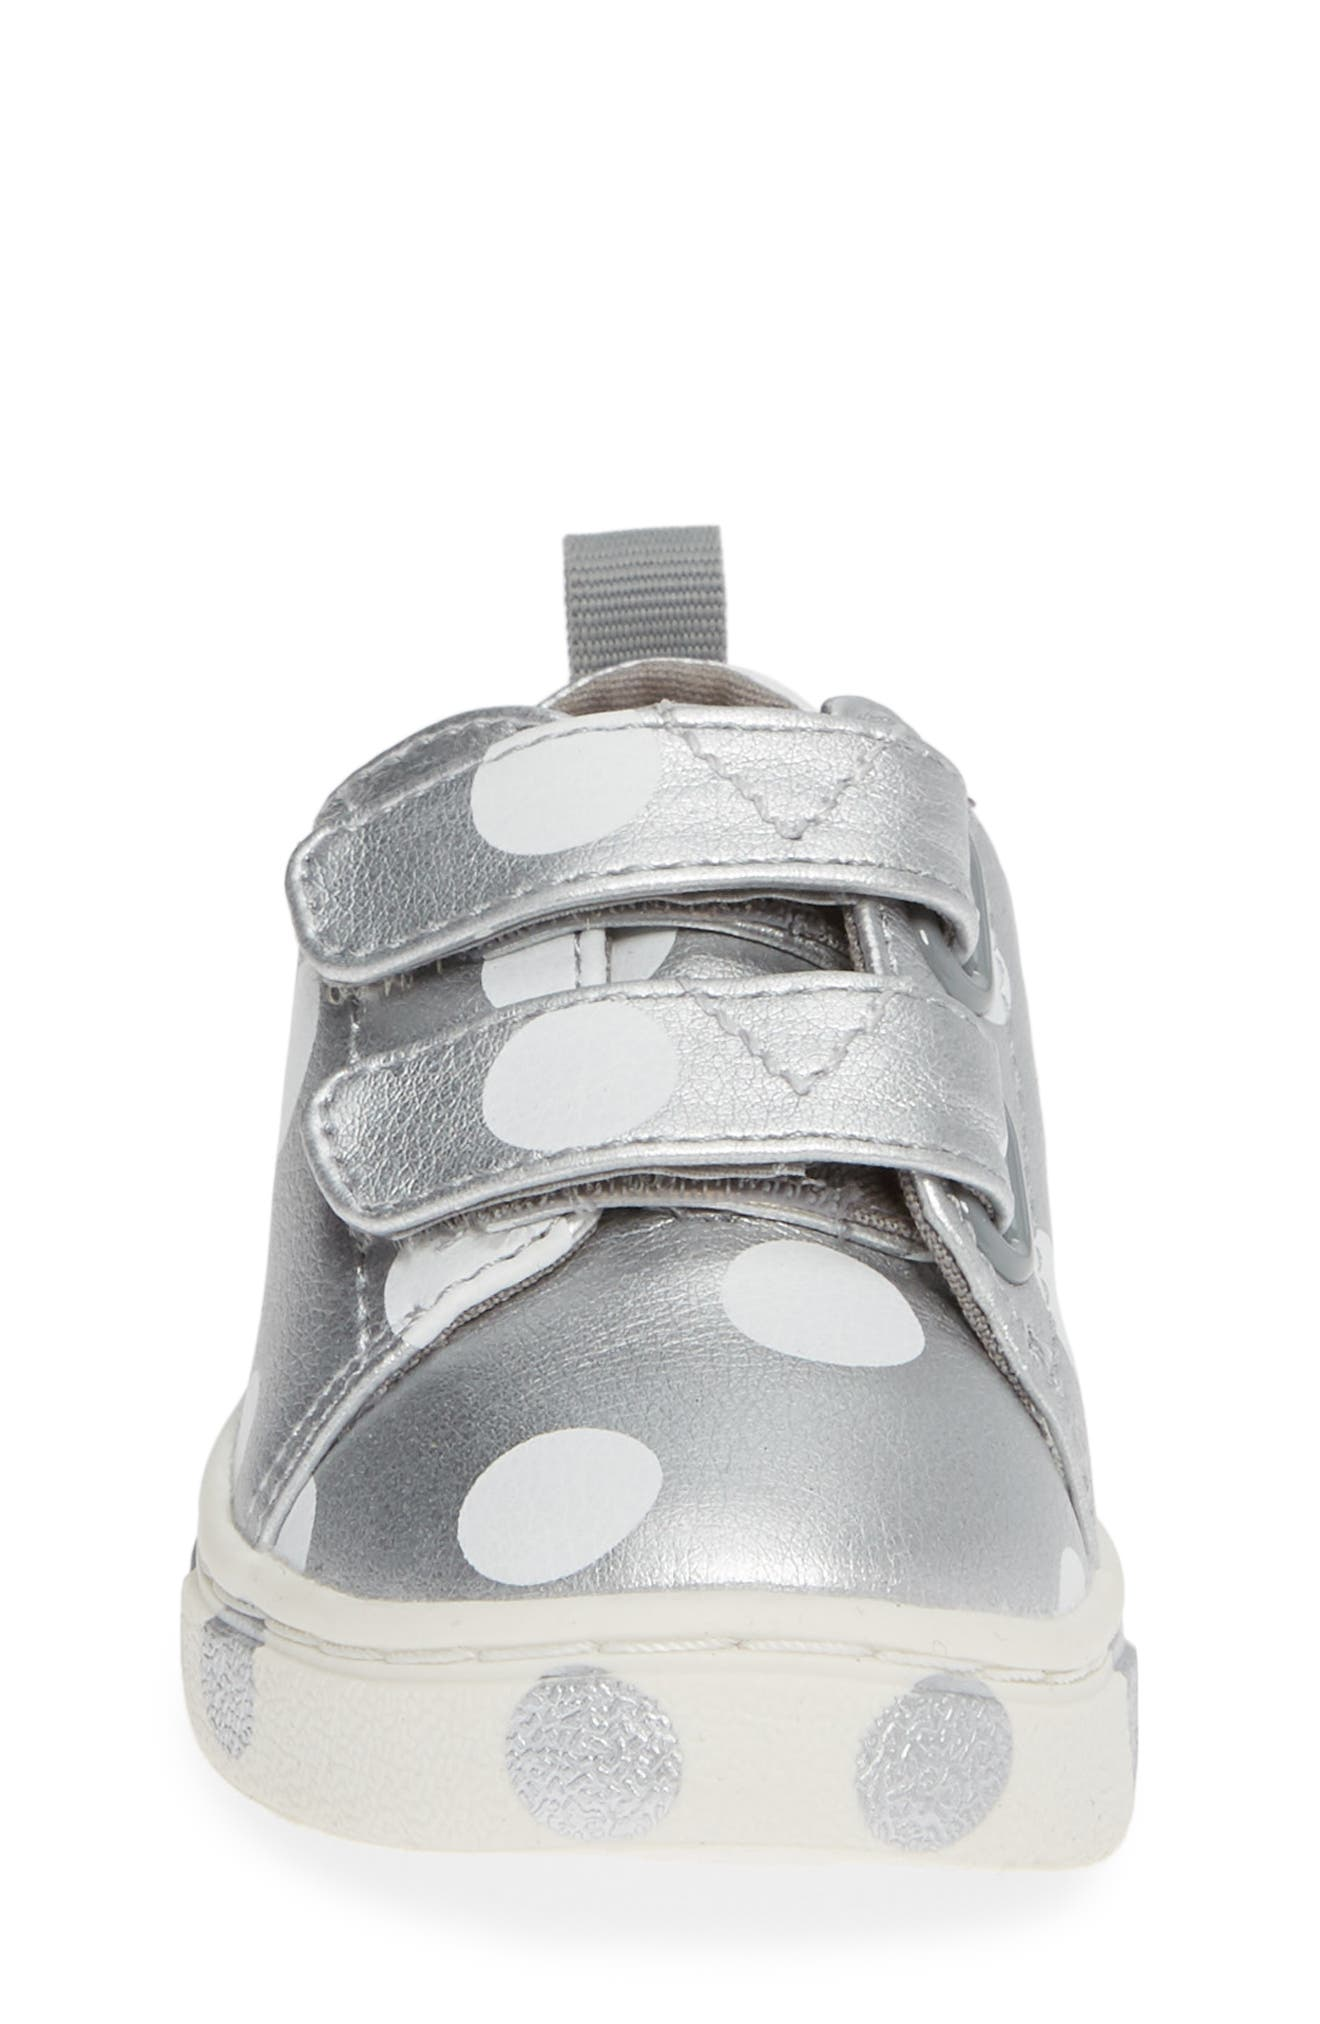 Lenny Sneaker,                             Alternate thumbnail 4, color,                             SILVER SYNTHETIC LEATHER DOTS